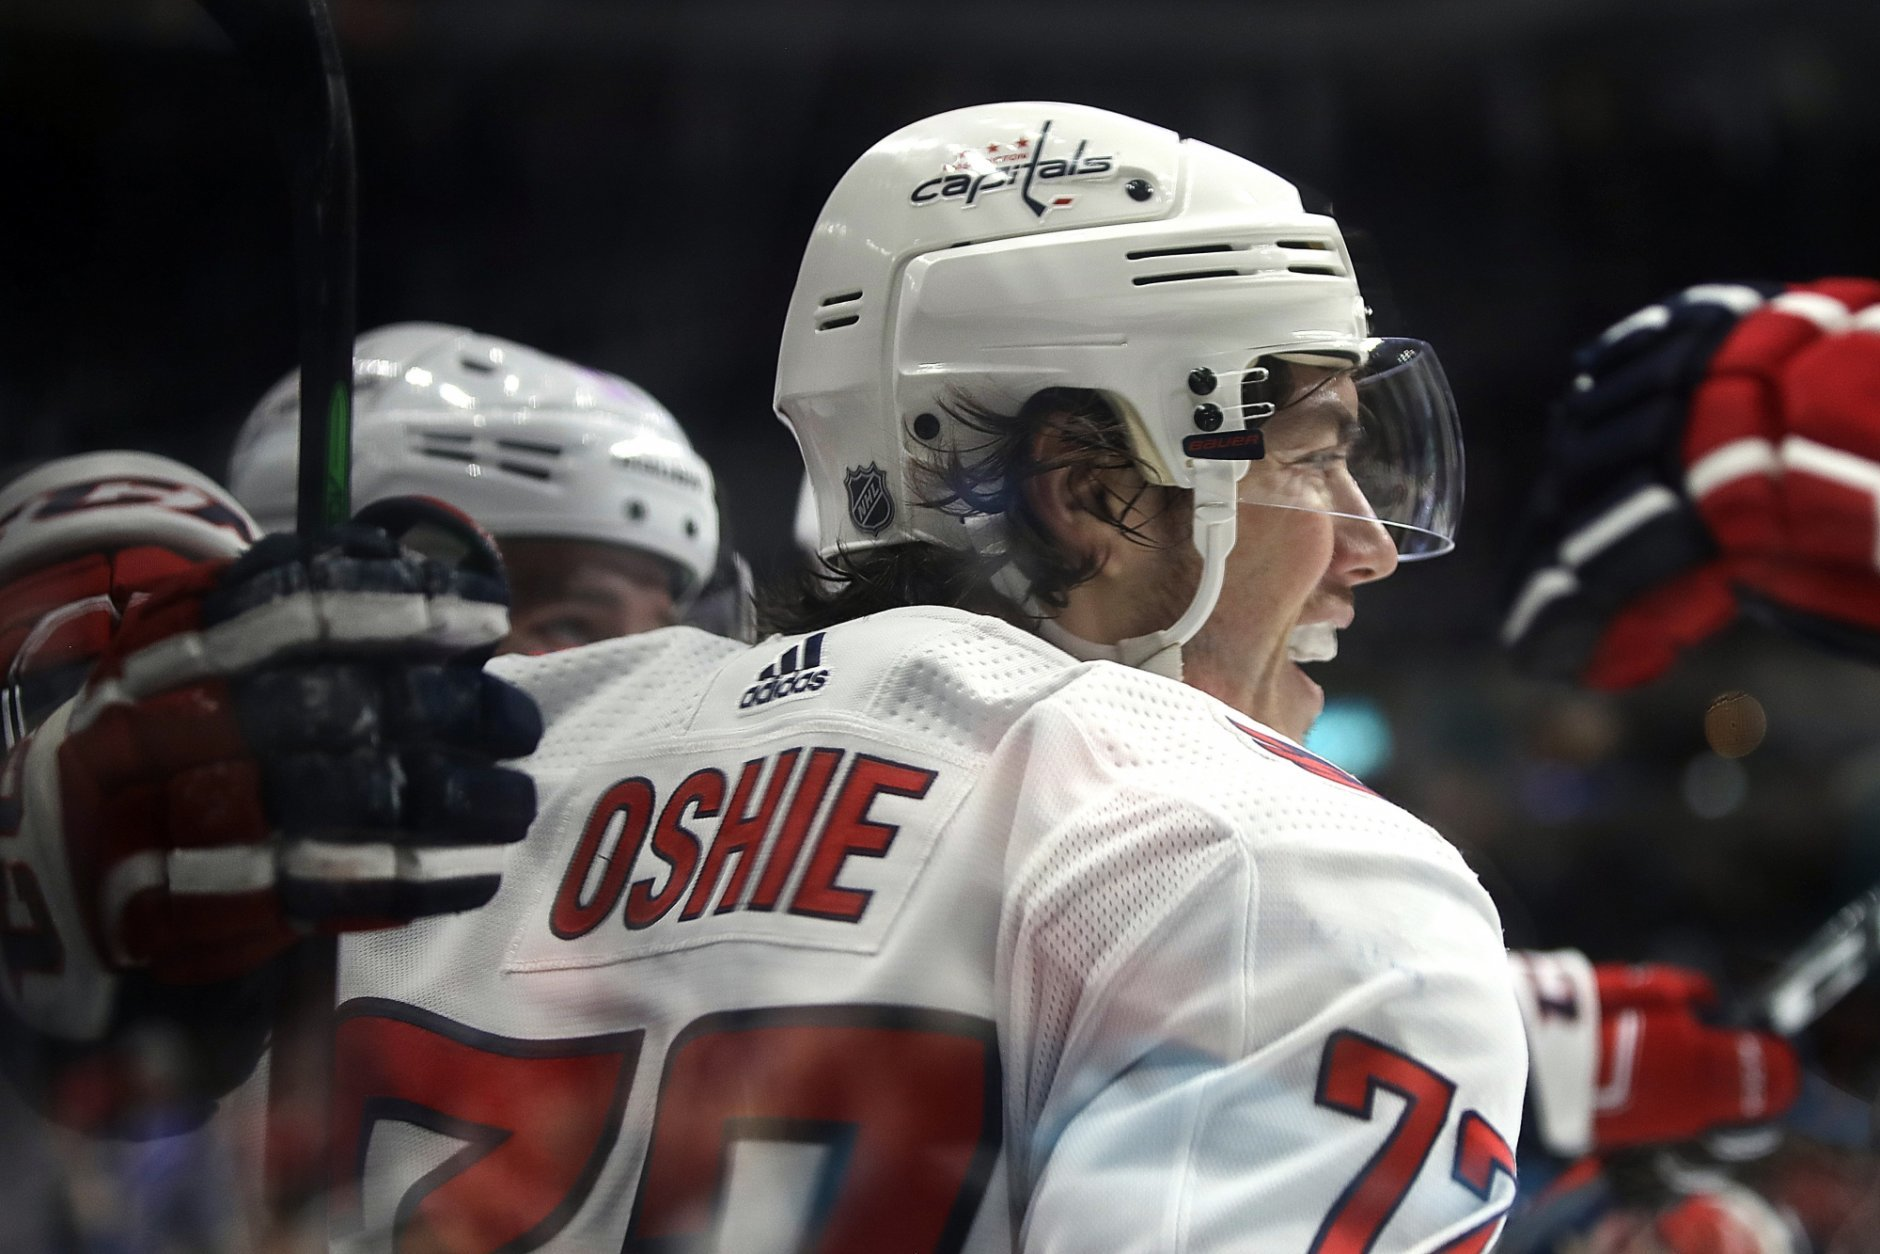 Washington Capitals' T.J. Oshie celebrates after scoring a goal against the San Jose Sharks in the second period of an NHL hockey game Thursday, Feb. 14, 2019, in San Jose, Calif. (AP Photo/Ben Margot)